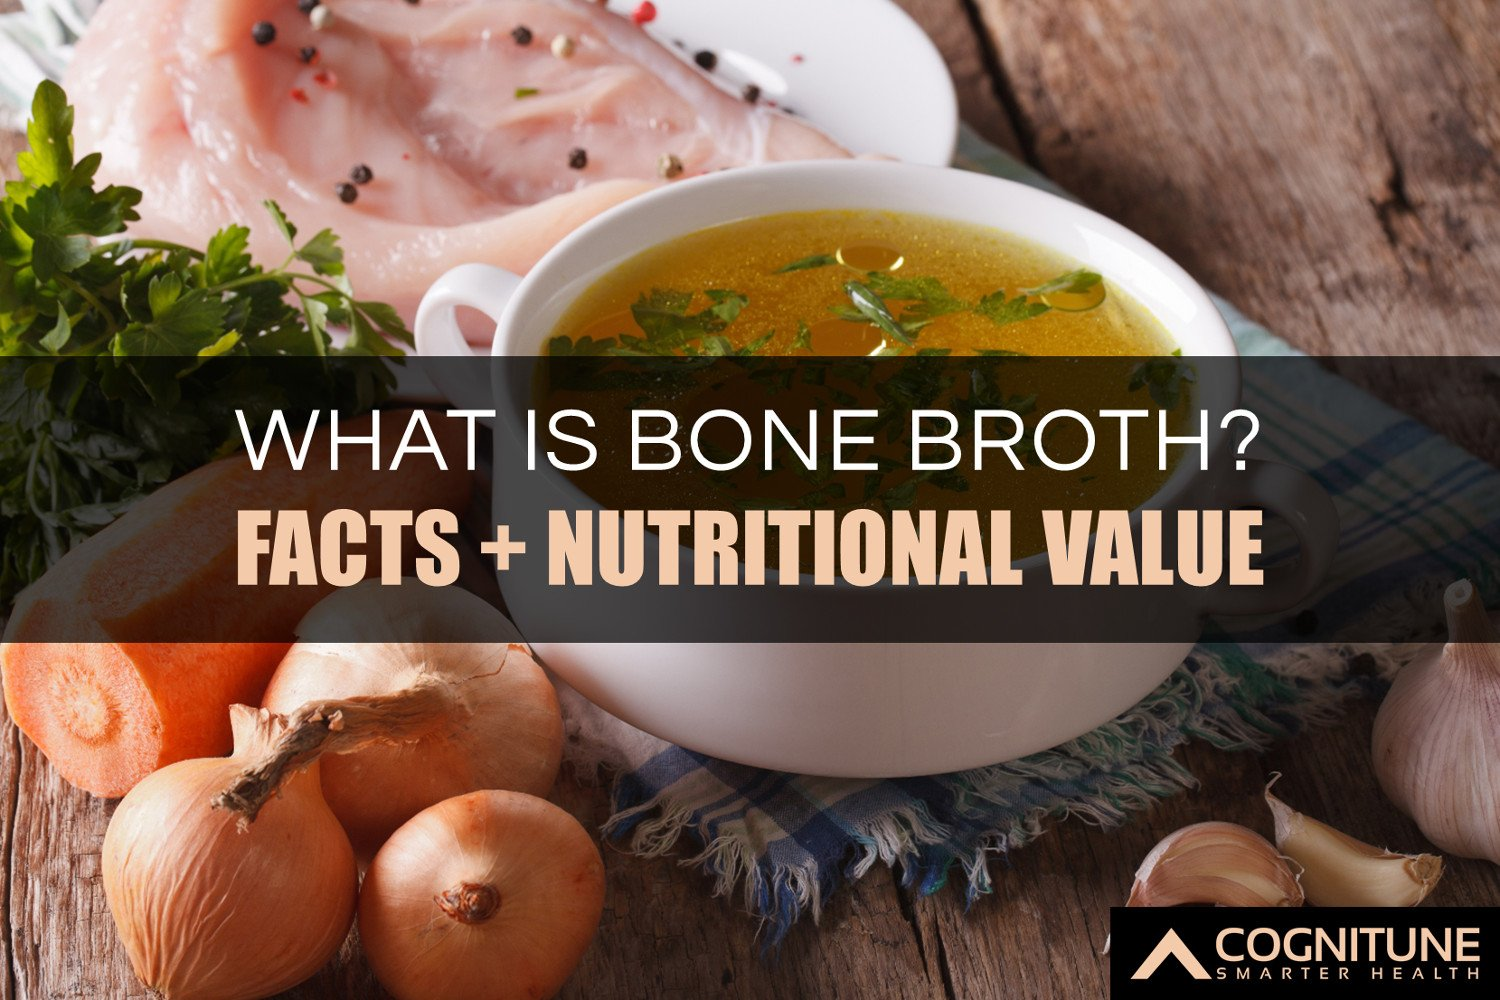 What is Bone Broth